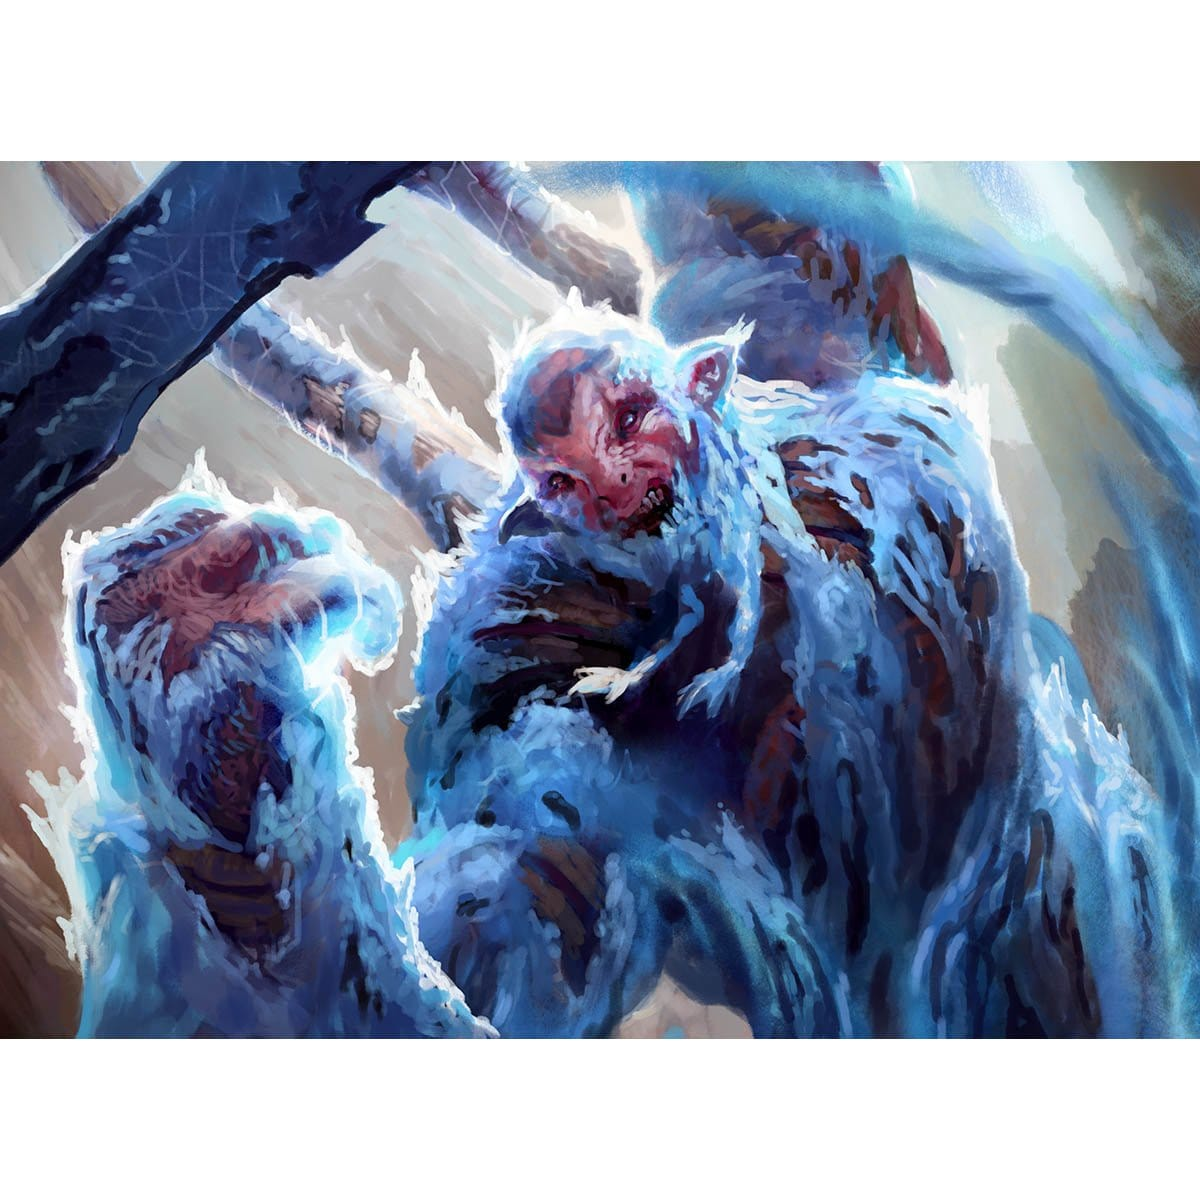 Crippling Chill Print - Print - Original Magic Art - Accessories for Magic the Gathering and other card games